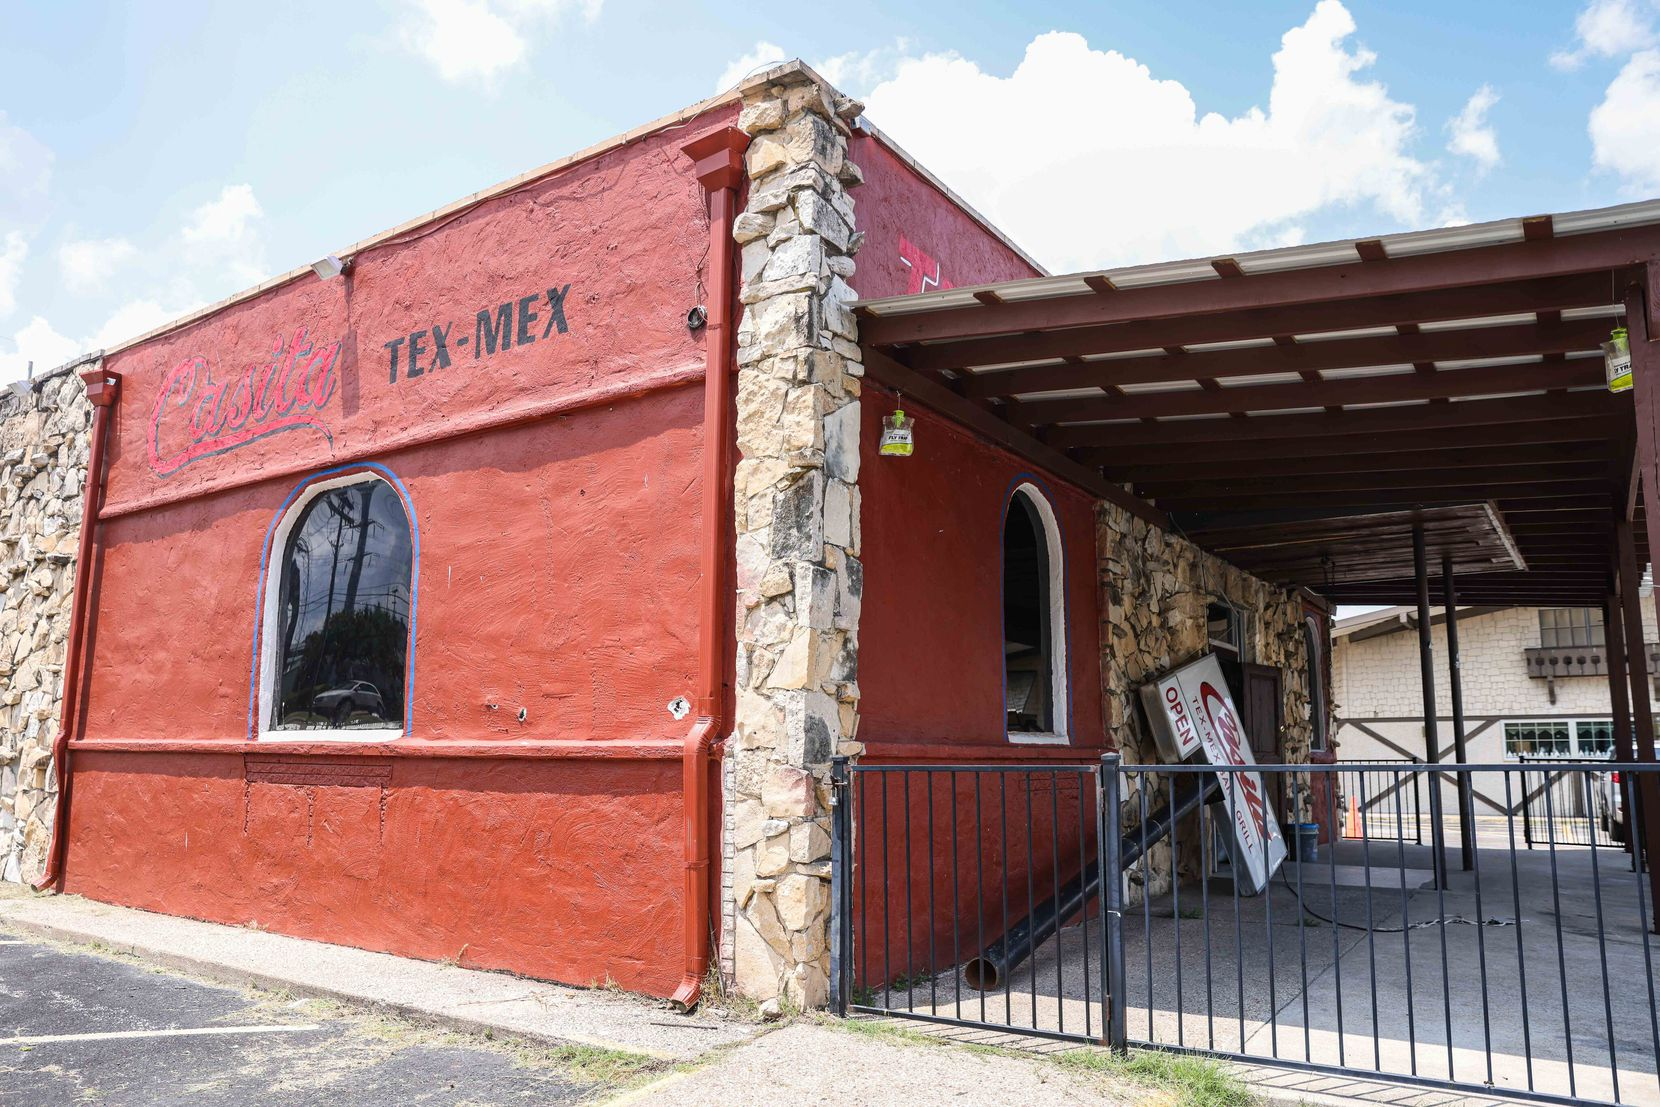 Casita Tex-Mex in Dallas had a bad fire at the end of 2020, and now the owners are rebuilding with plans to reopen.